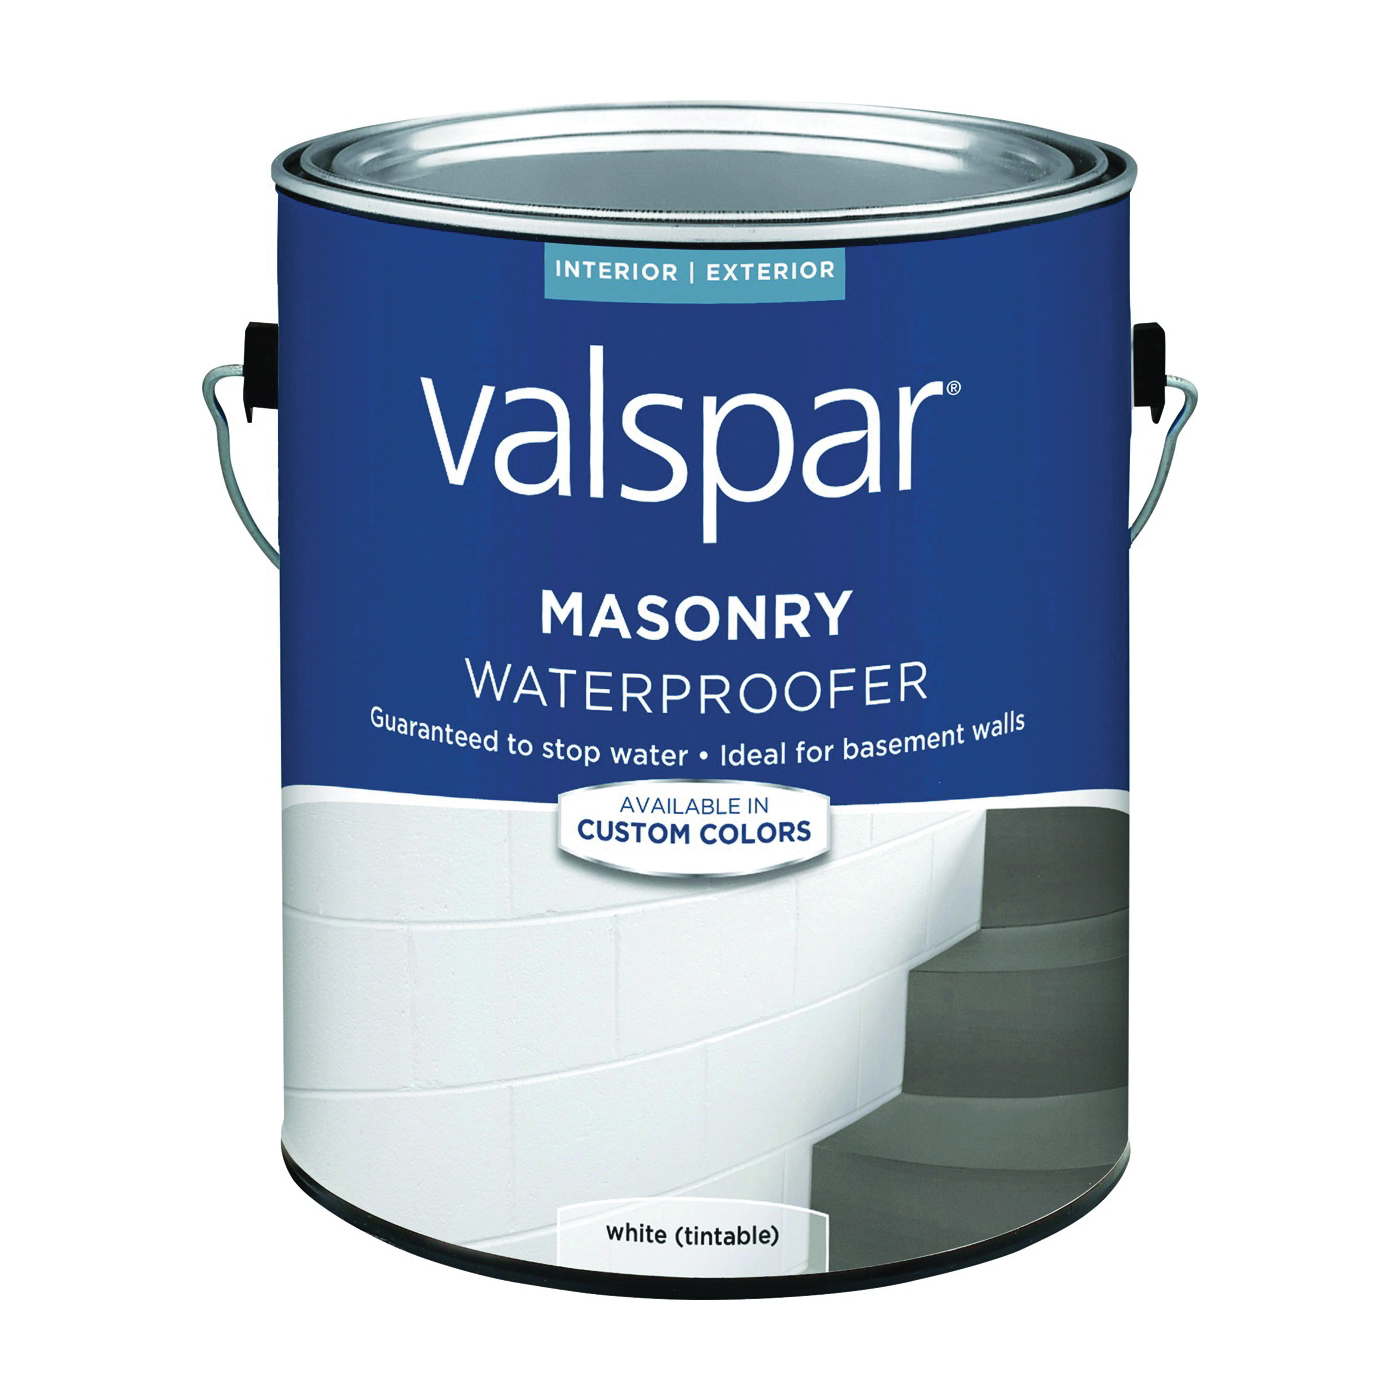 Picture of Valspar 82085 Series 82085C Masonry Waterproofer, White, Liquid, 1 gal Package, Pail